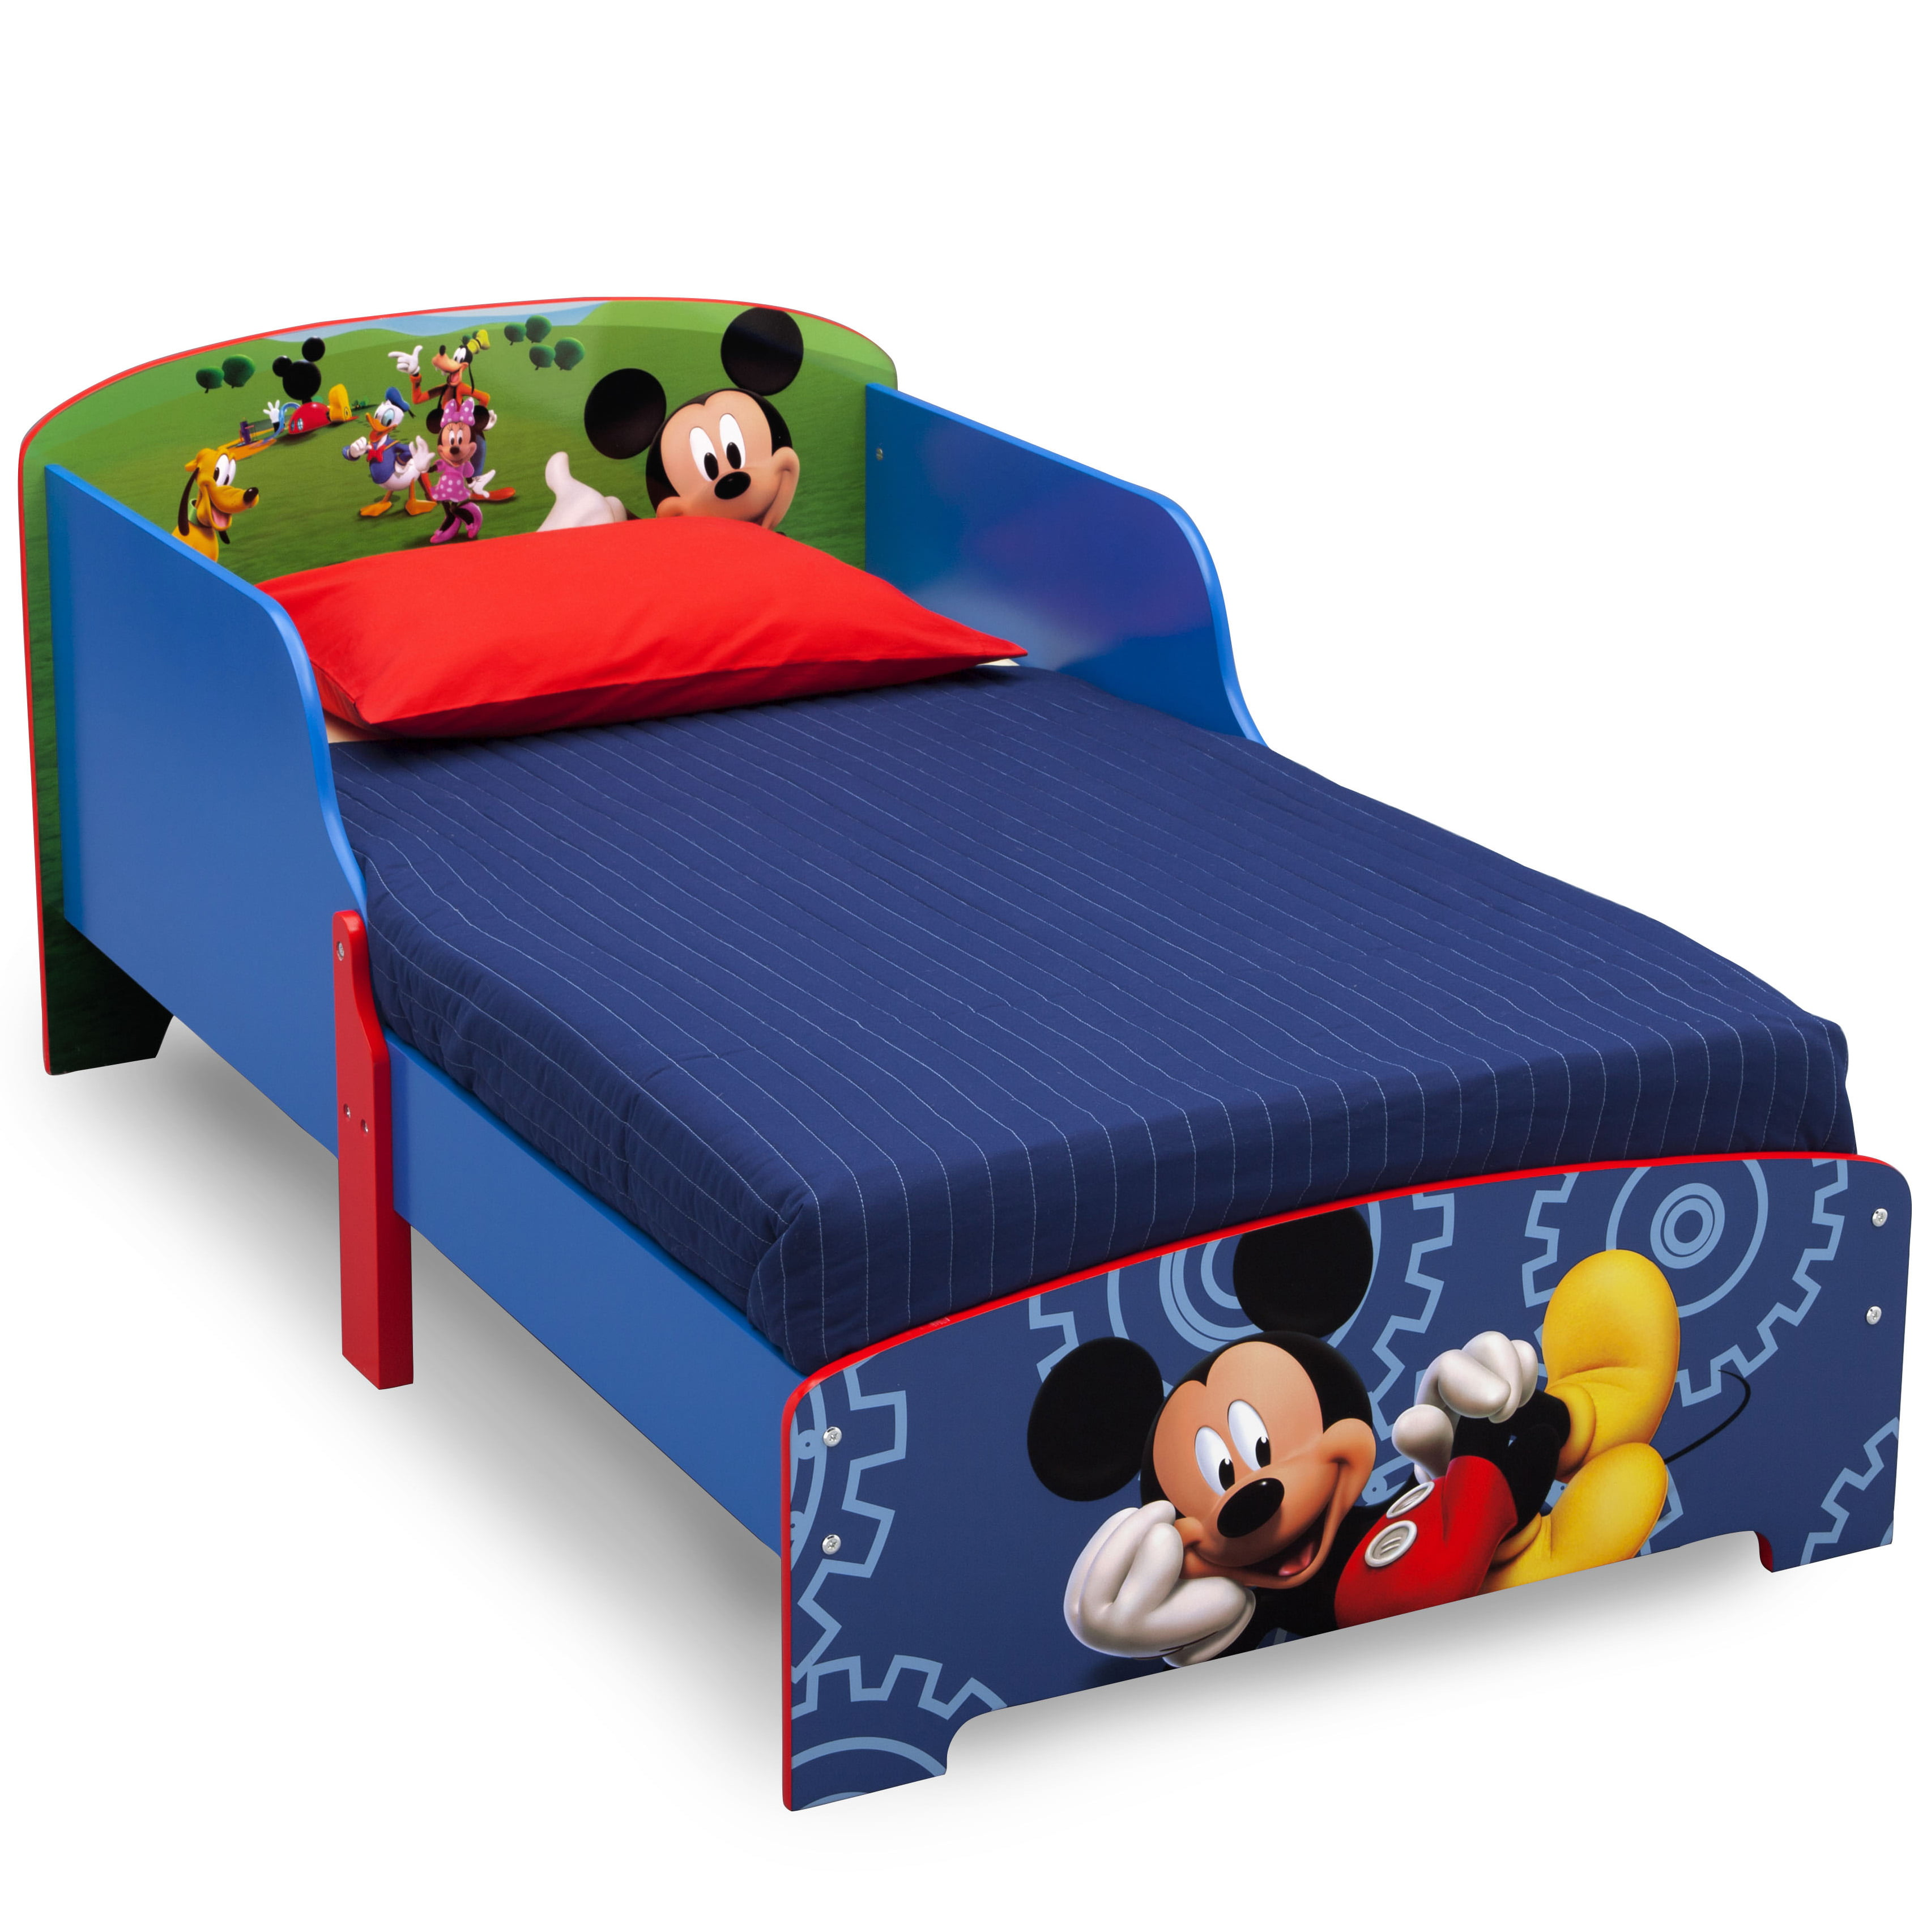 Mickey Mouse Wooden Toddler Bed - Walmart.com